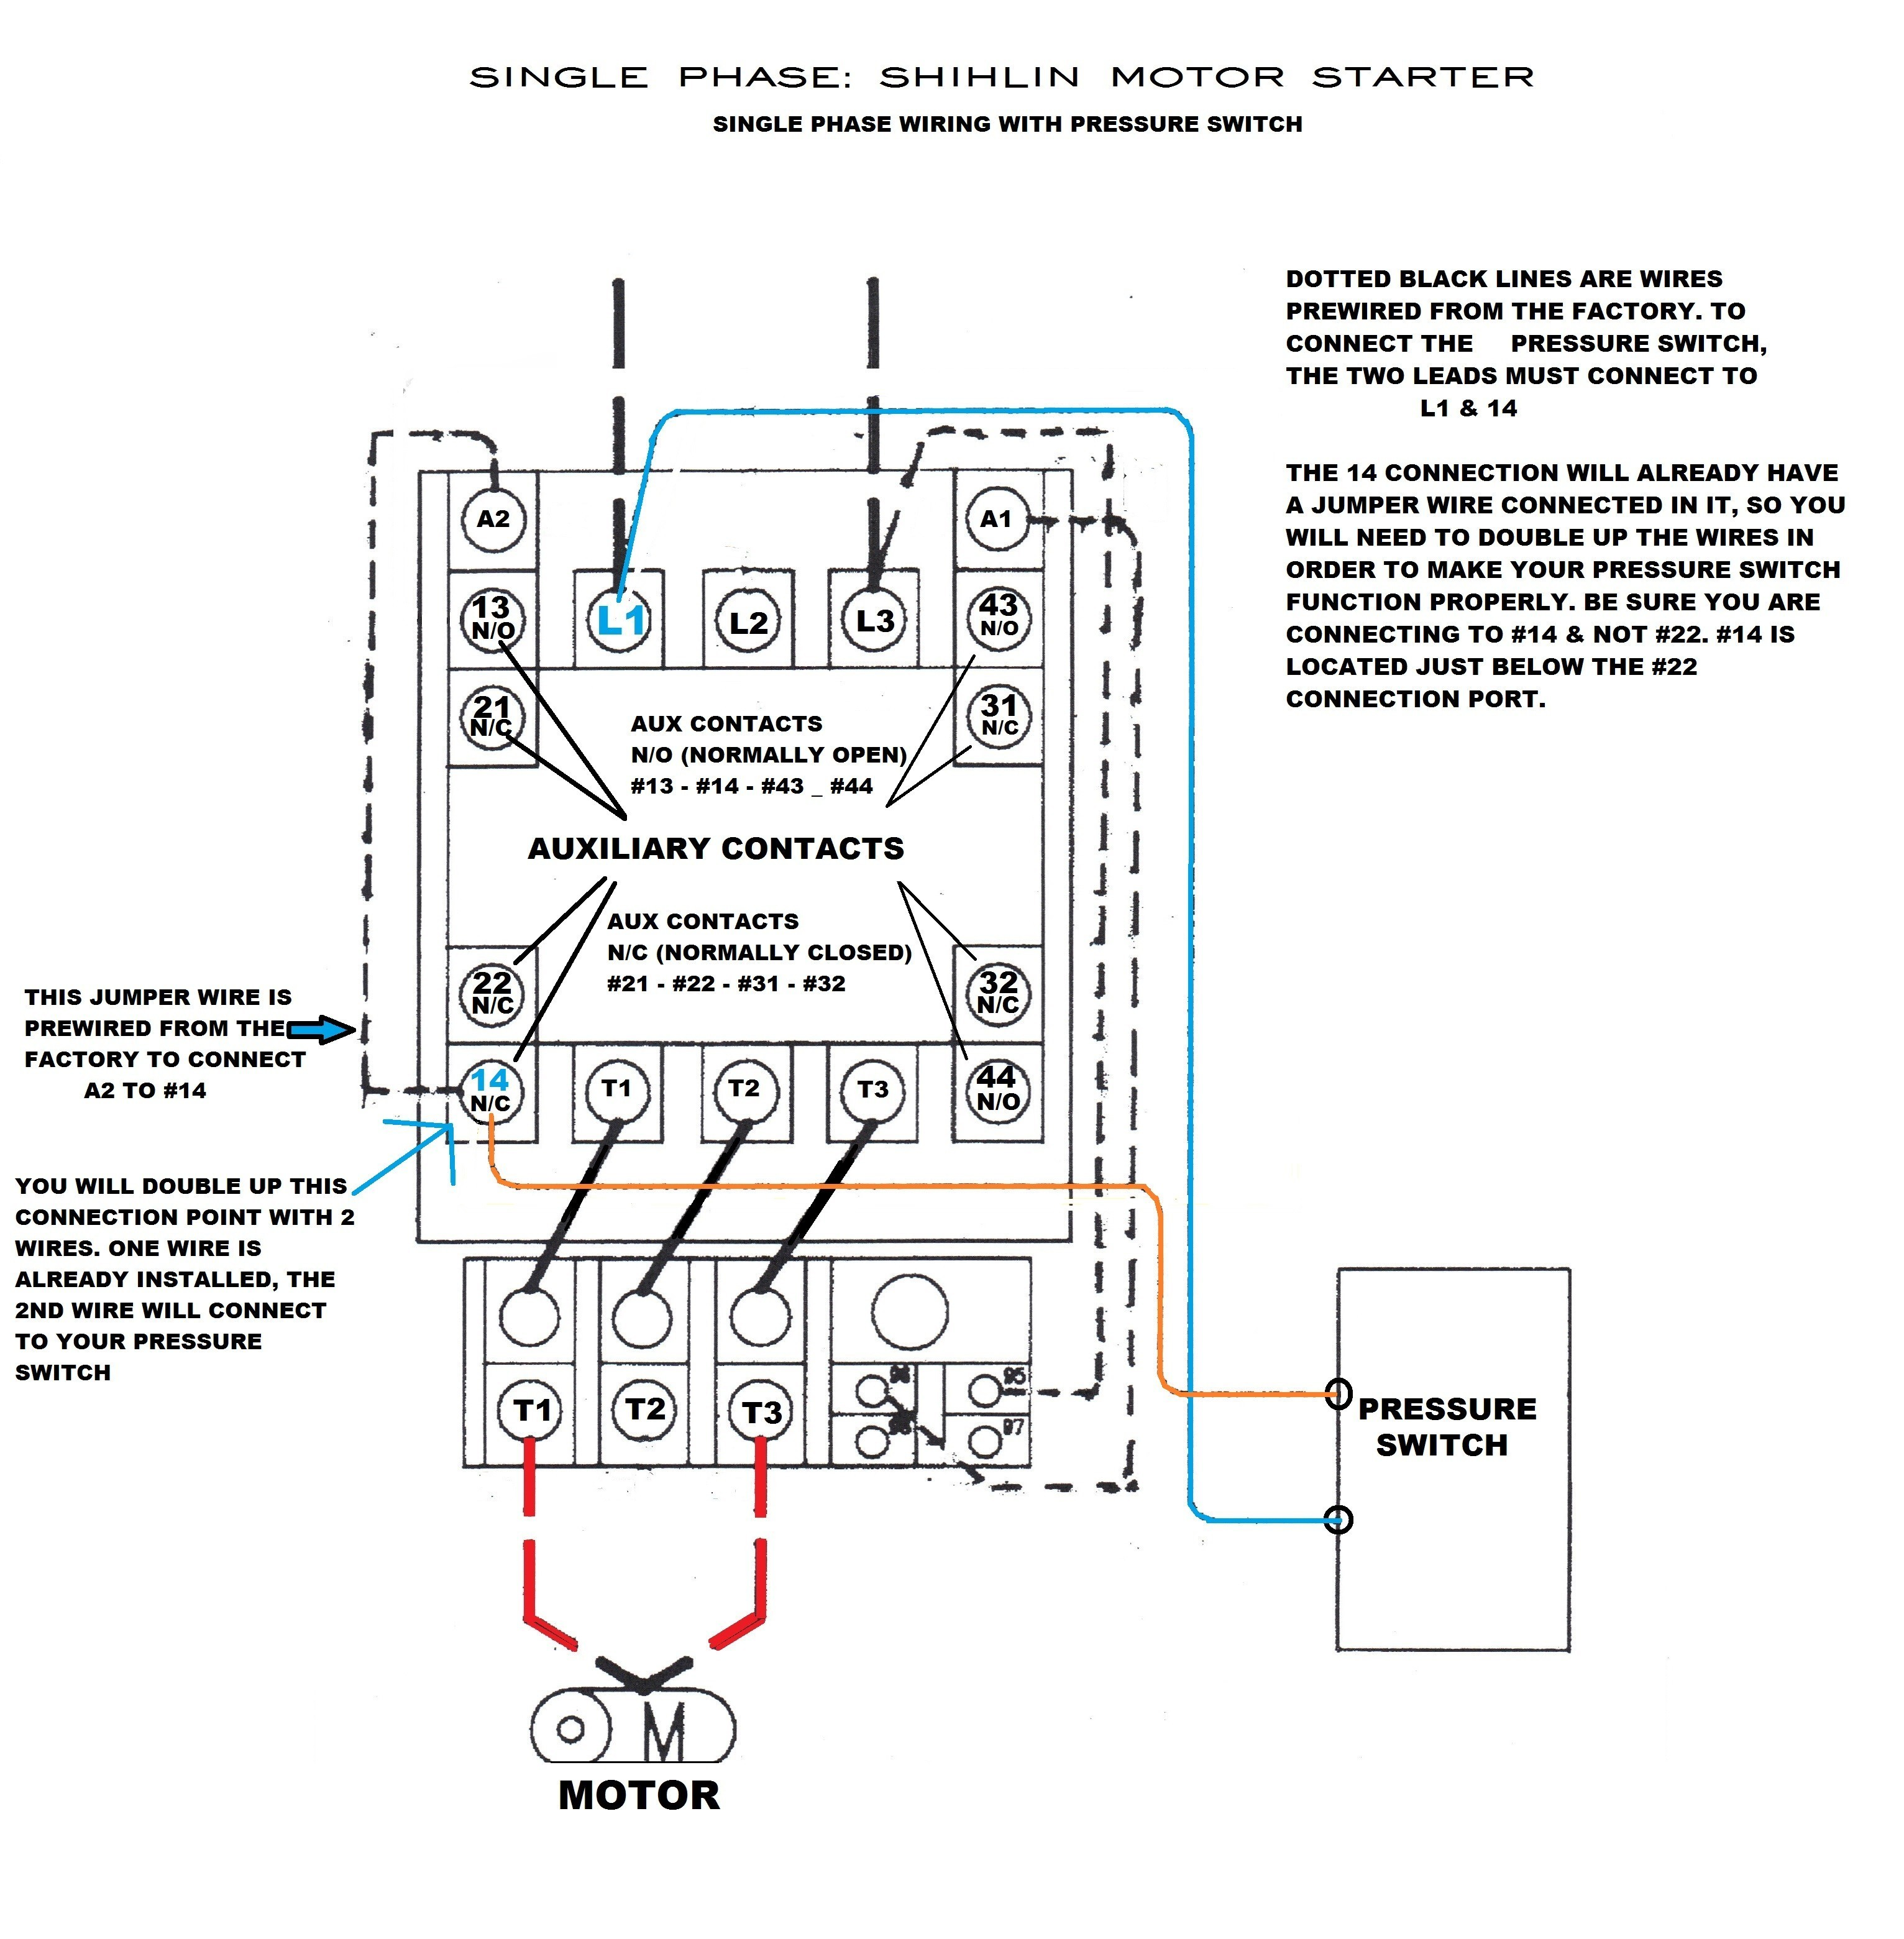 sd_3179] rtd phase motor wiring diagrams moreover siemens wiring diagram  also free diagram  hila boapu denli magn crove amenti spoat inifo trons mohammedshrine librar  wiring 101